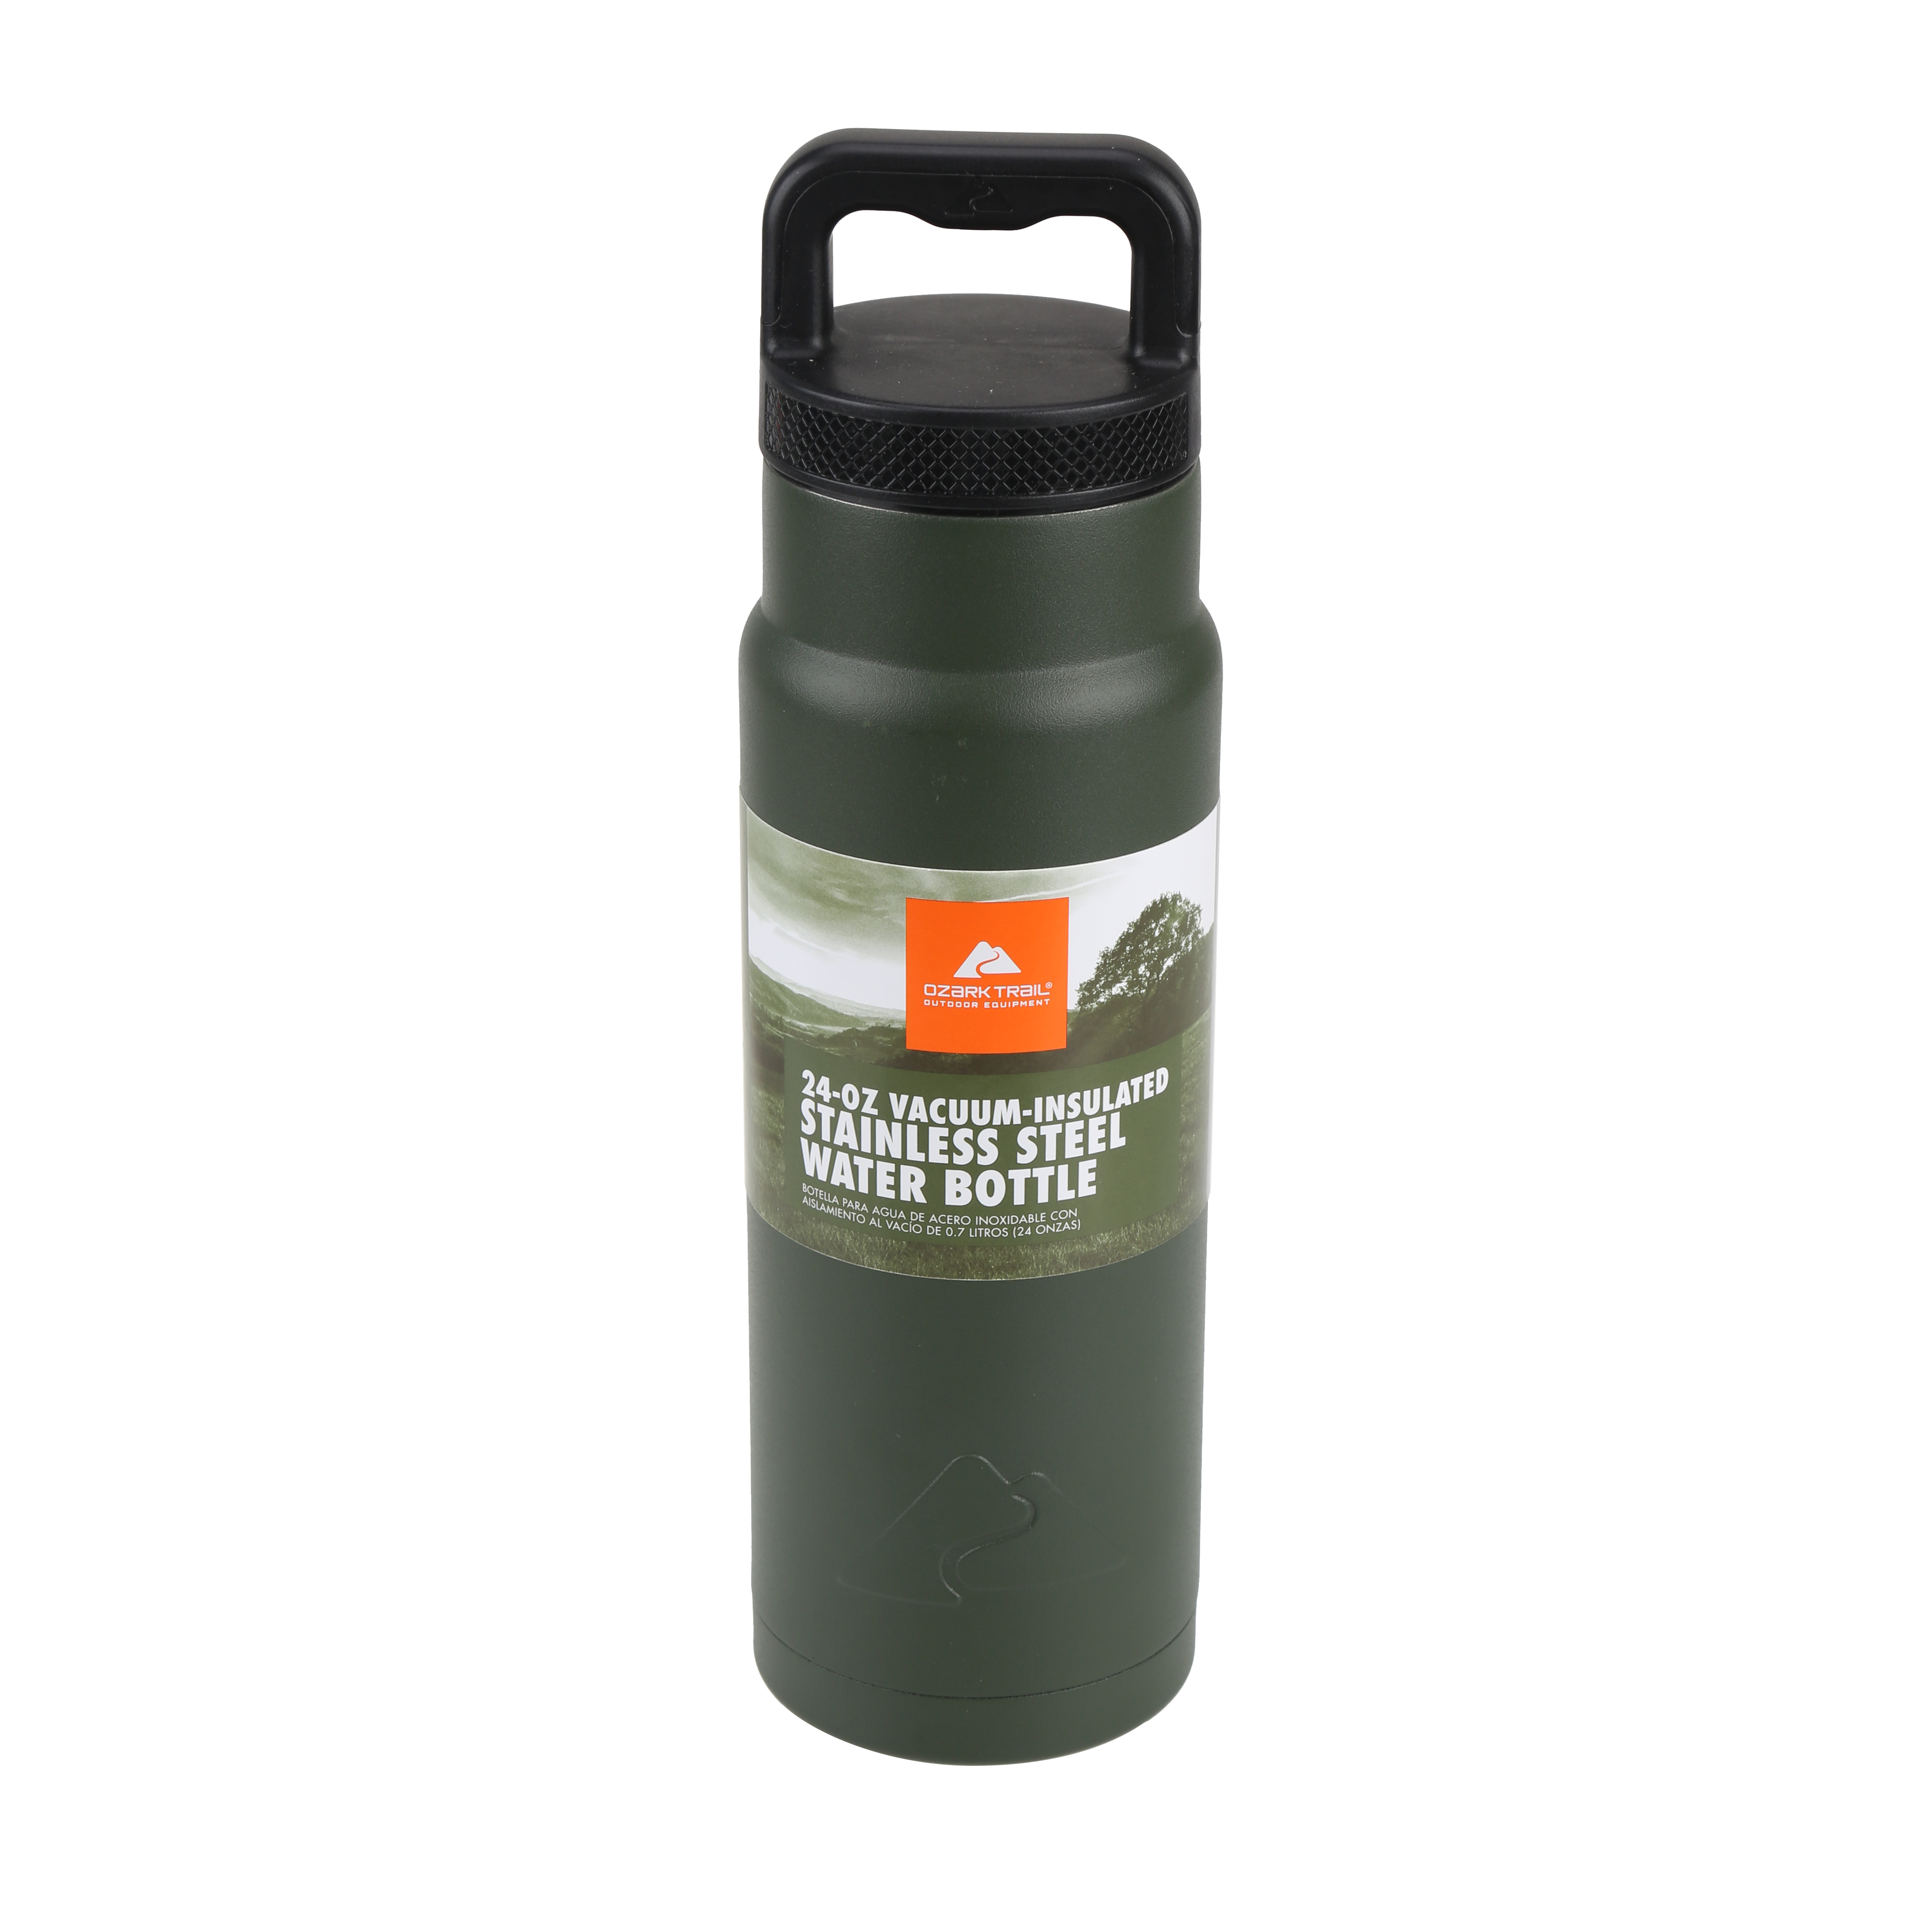 Ozark Trail 24-Ounce Vacuum Insulated Stainless Steel Bottle, Holly Green